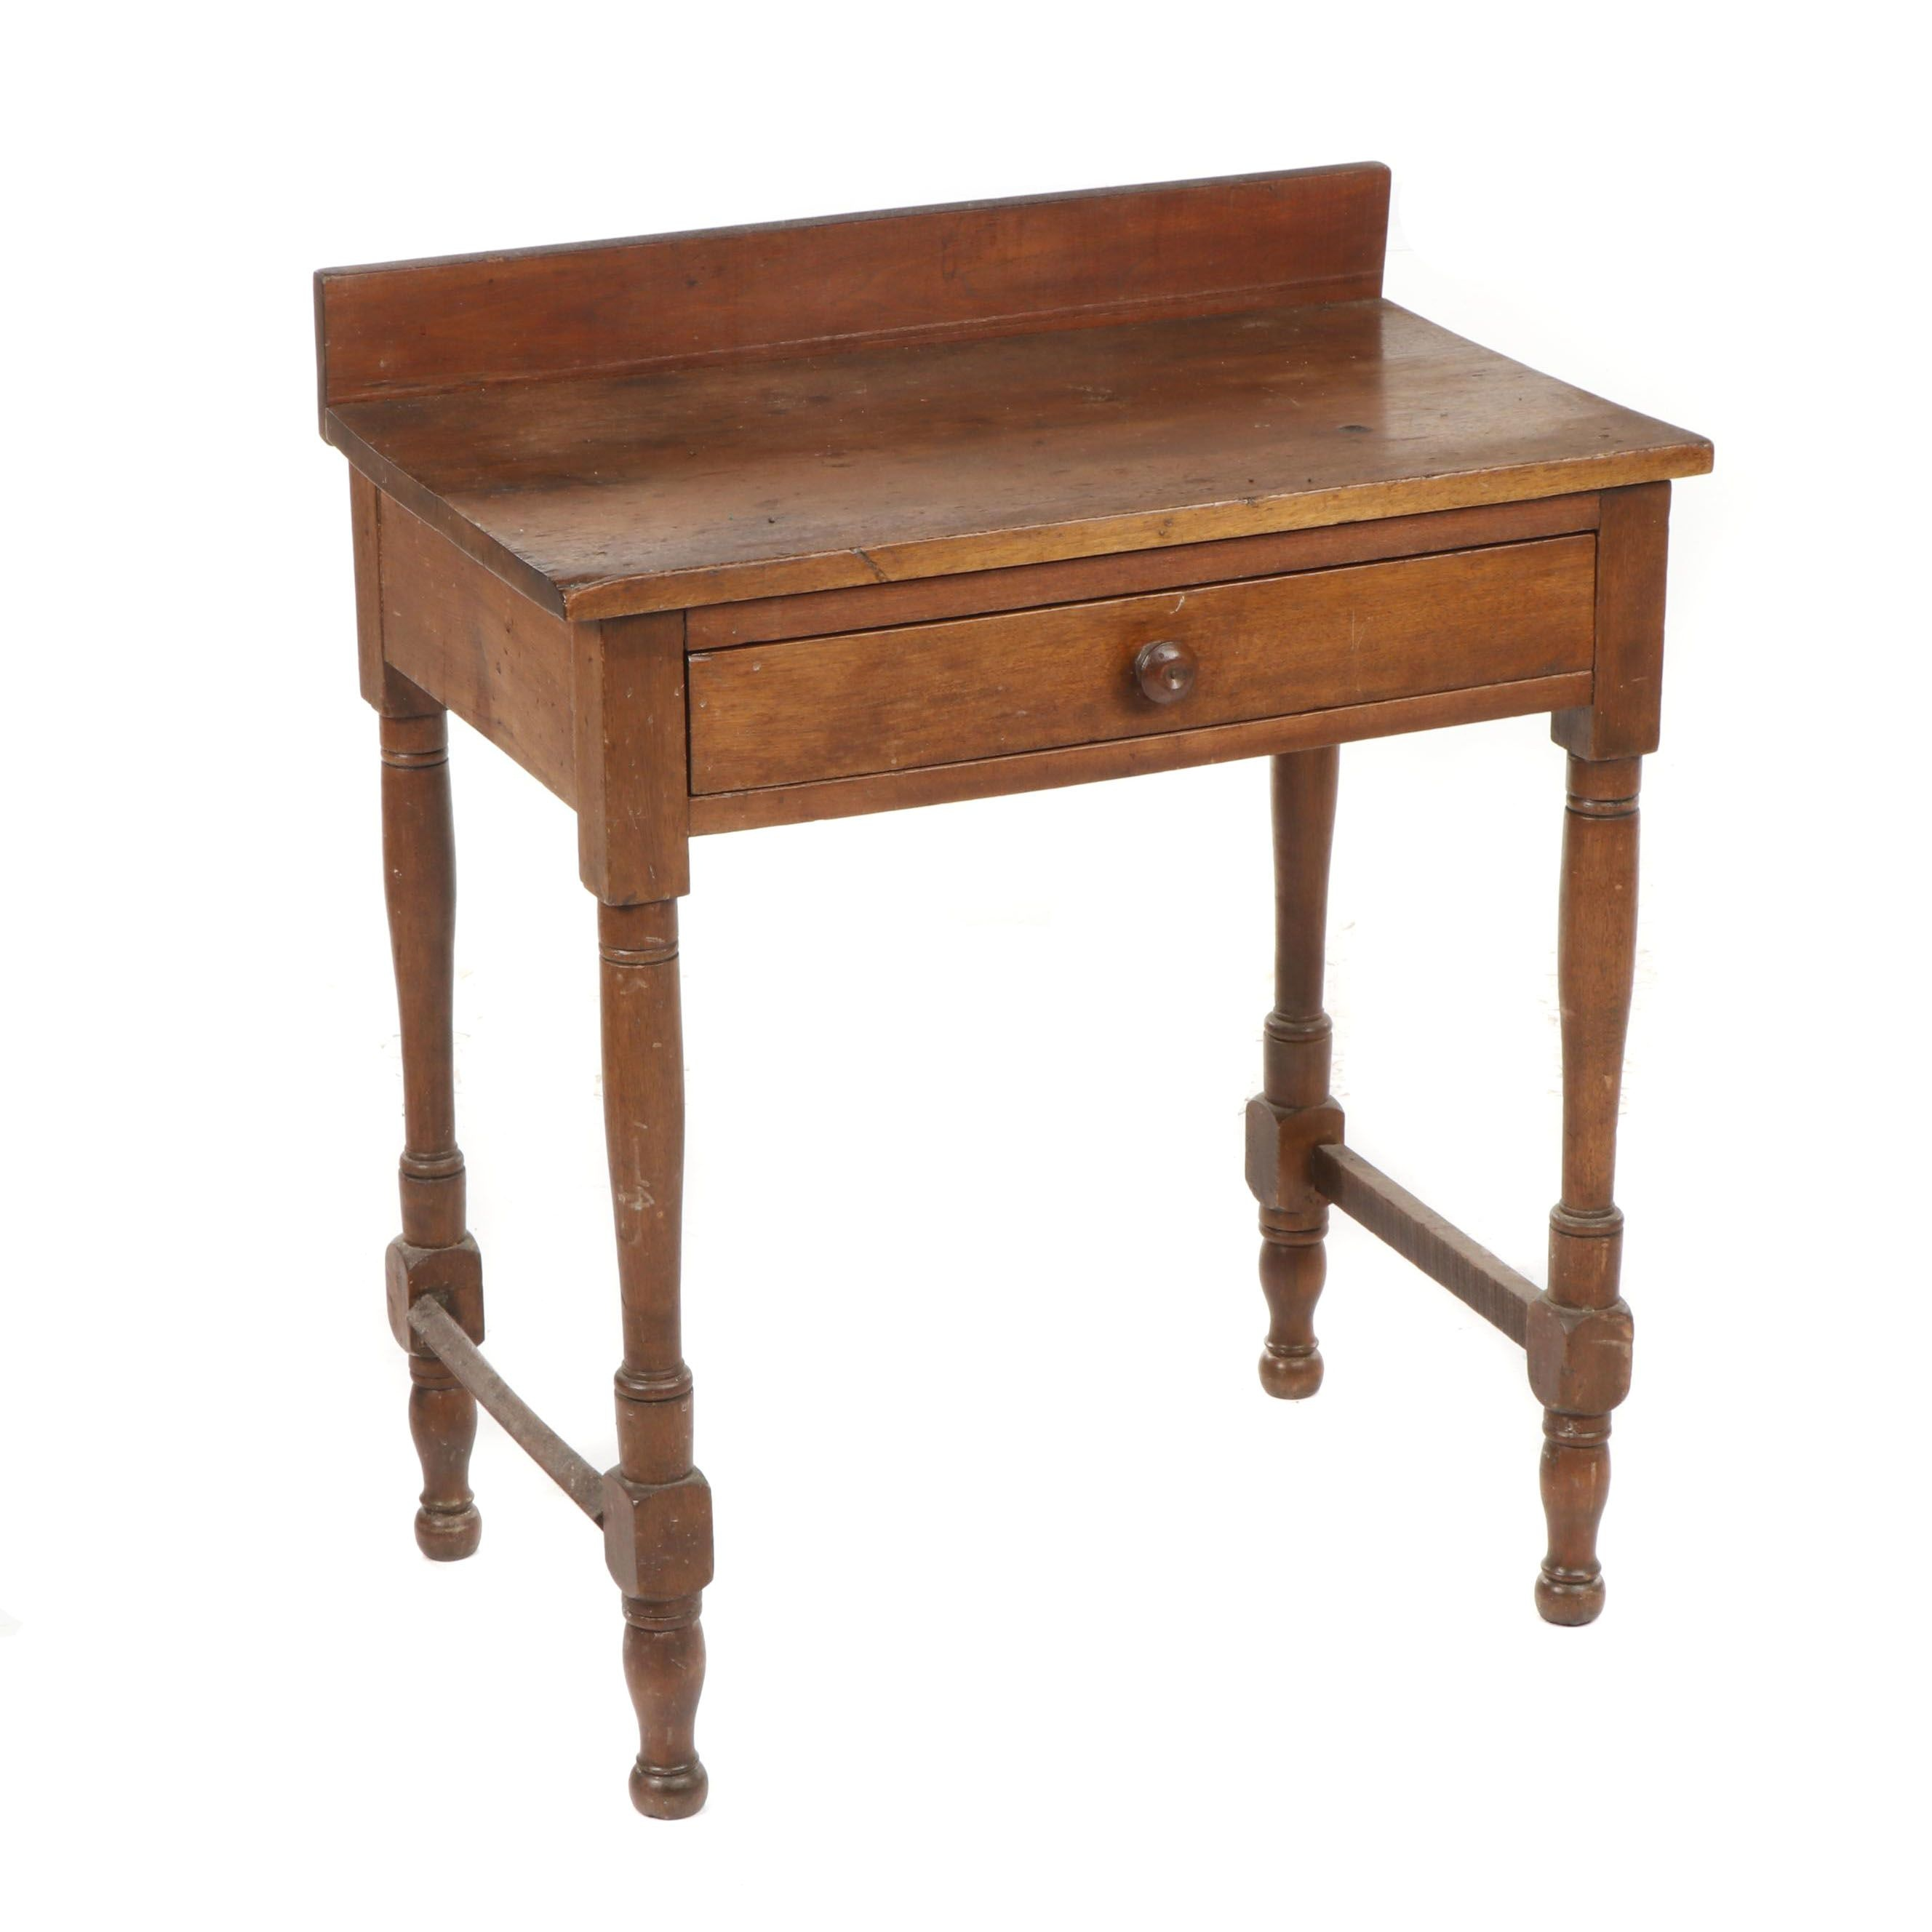 Mahogany Children's Desk, 20th Century